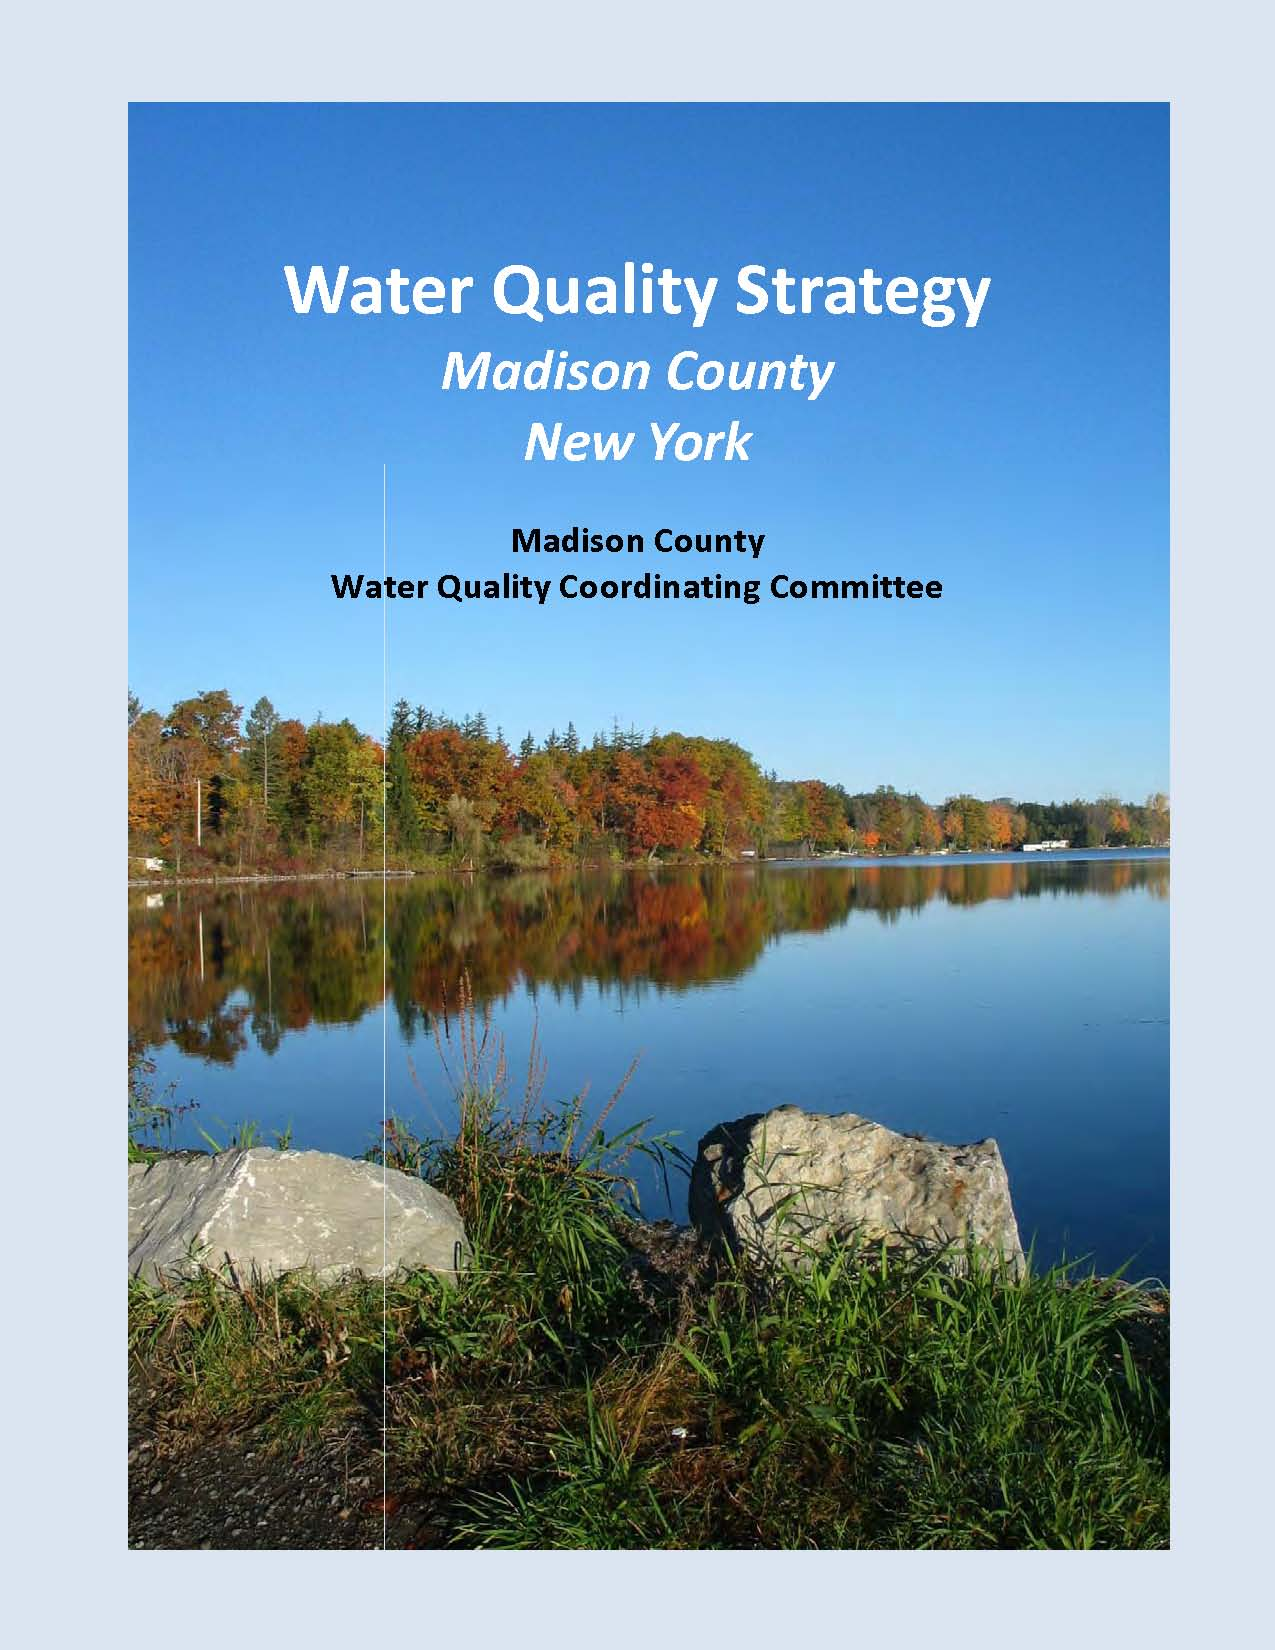 Water Quality Strategy Report Cover